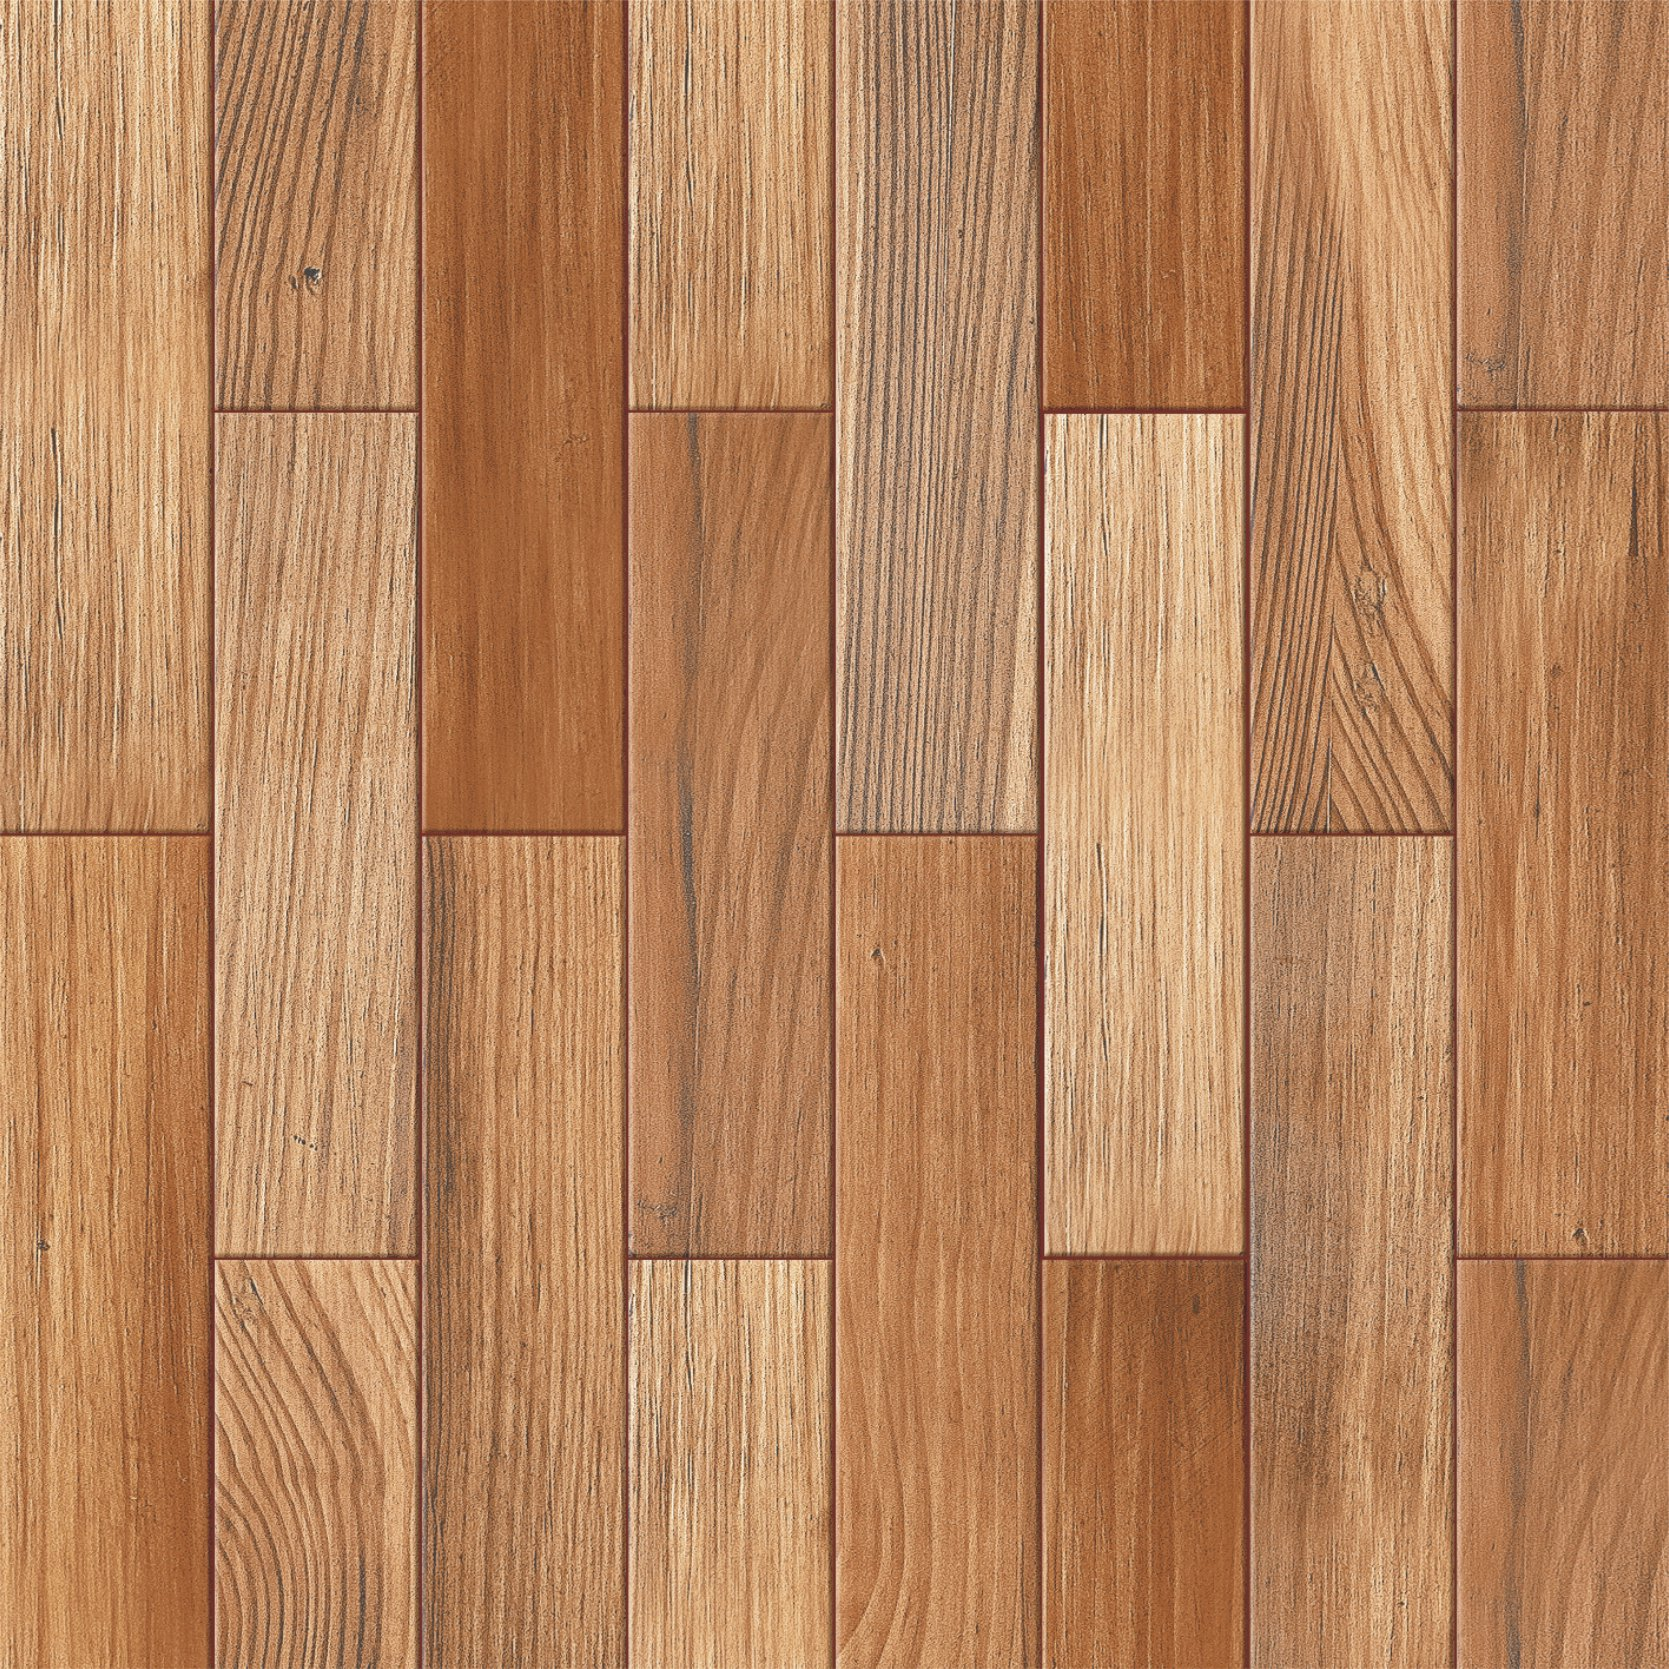 600mmx600mm Wood Floor Tiles 4509 Porcelain Tiles Floor